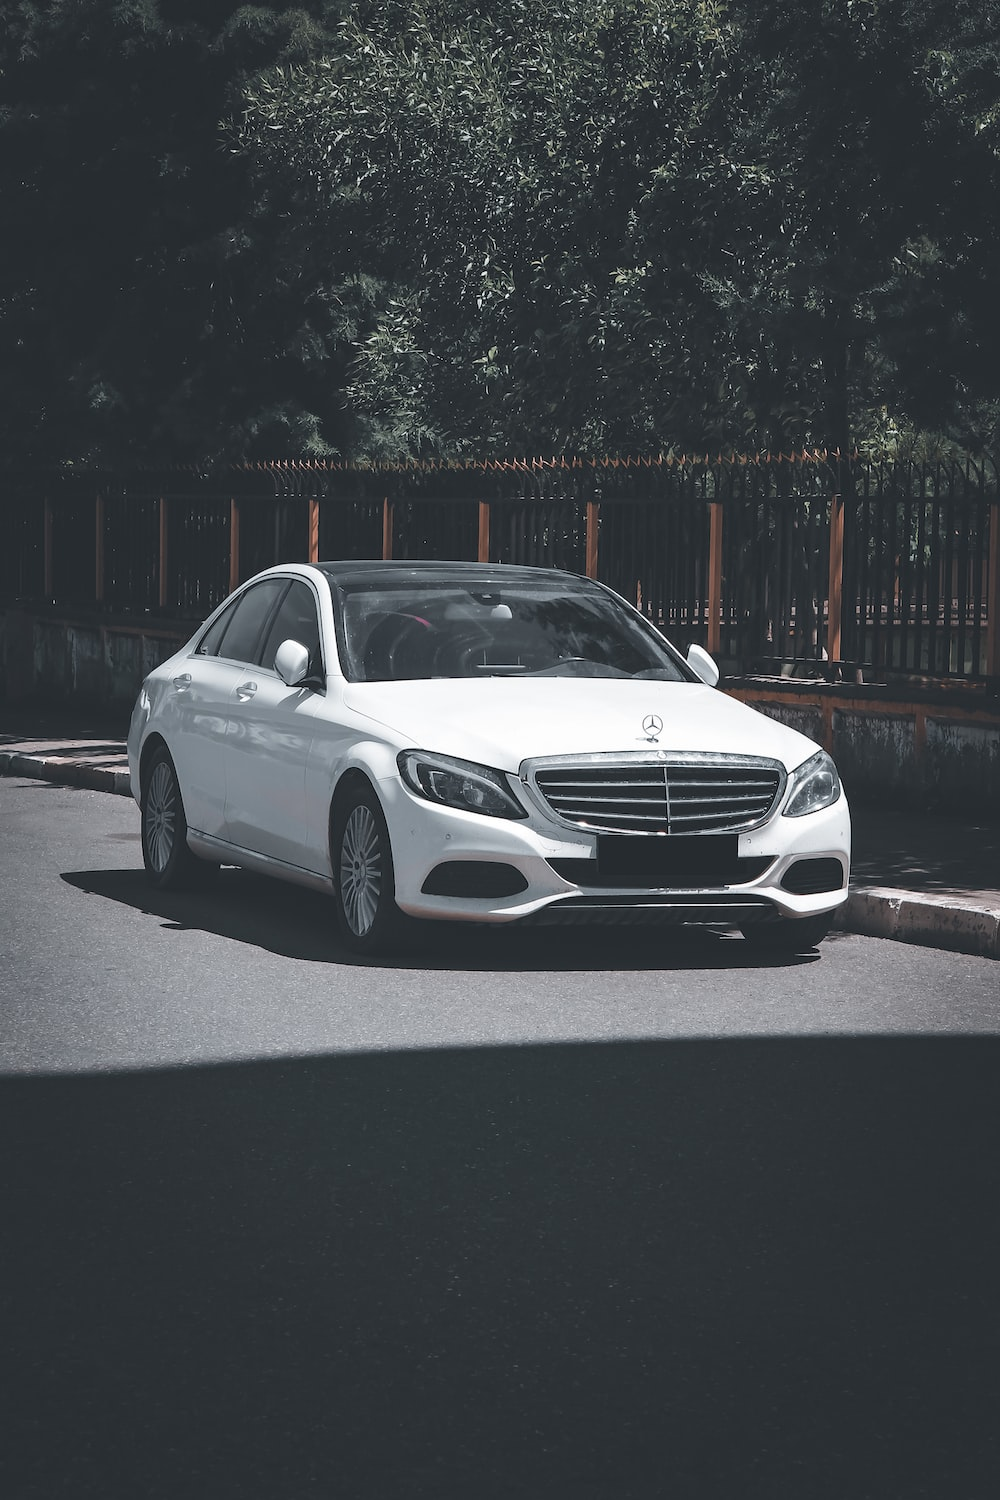 white mercedes benz coupe on road during night time